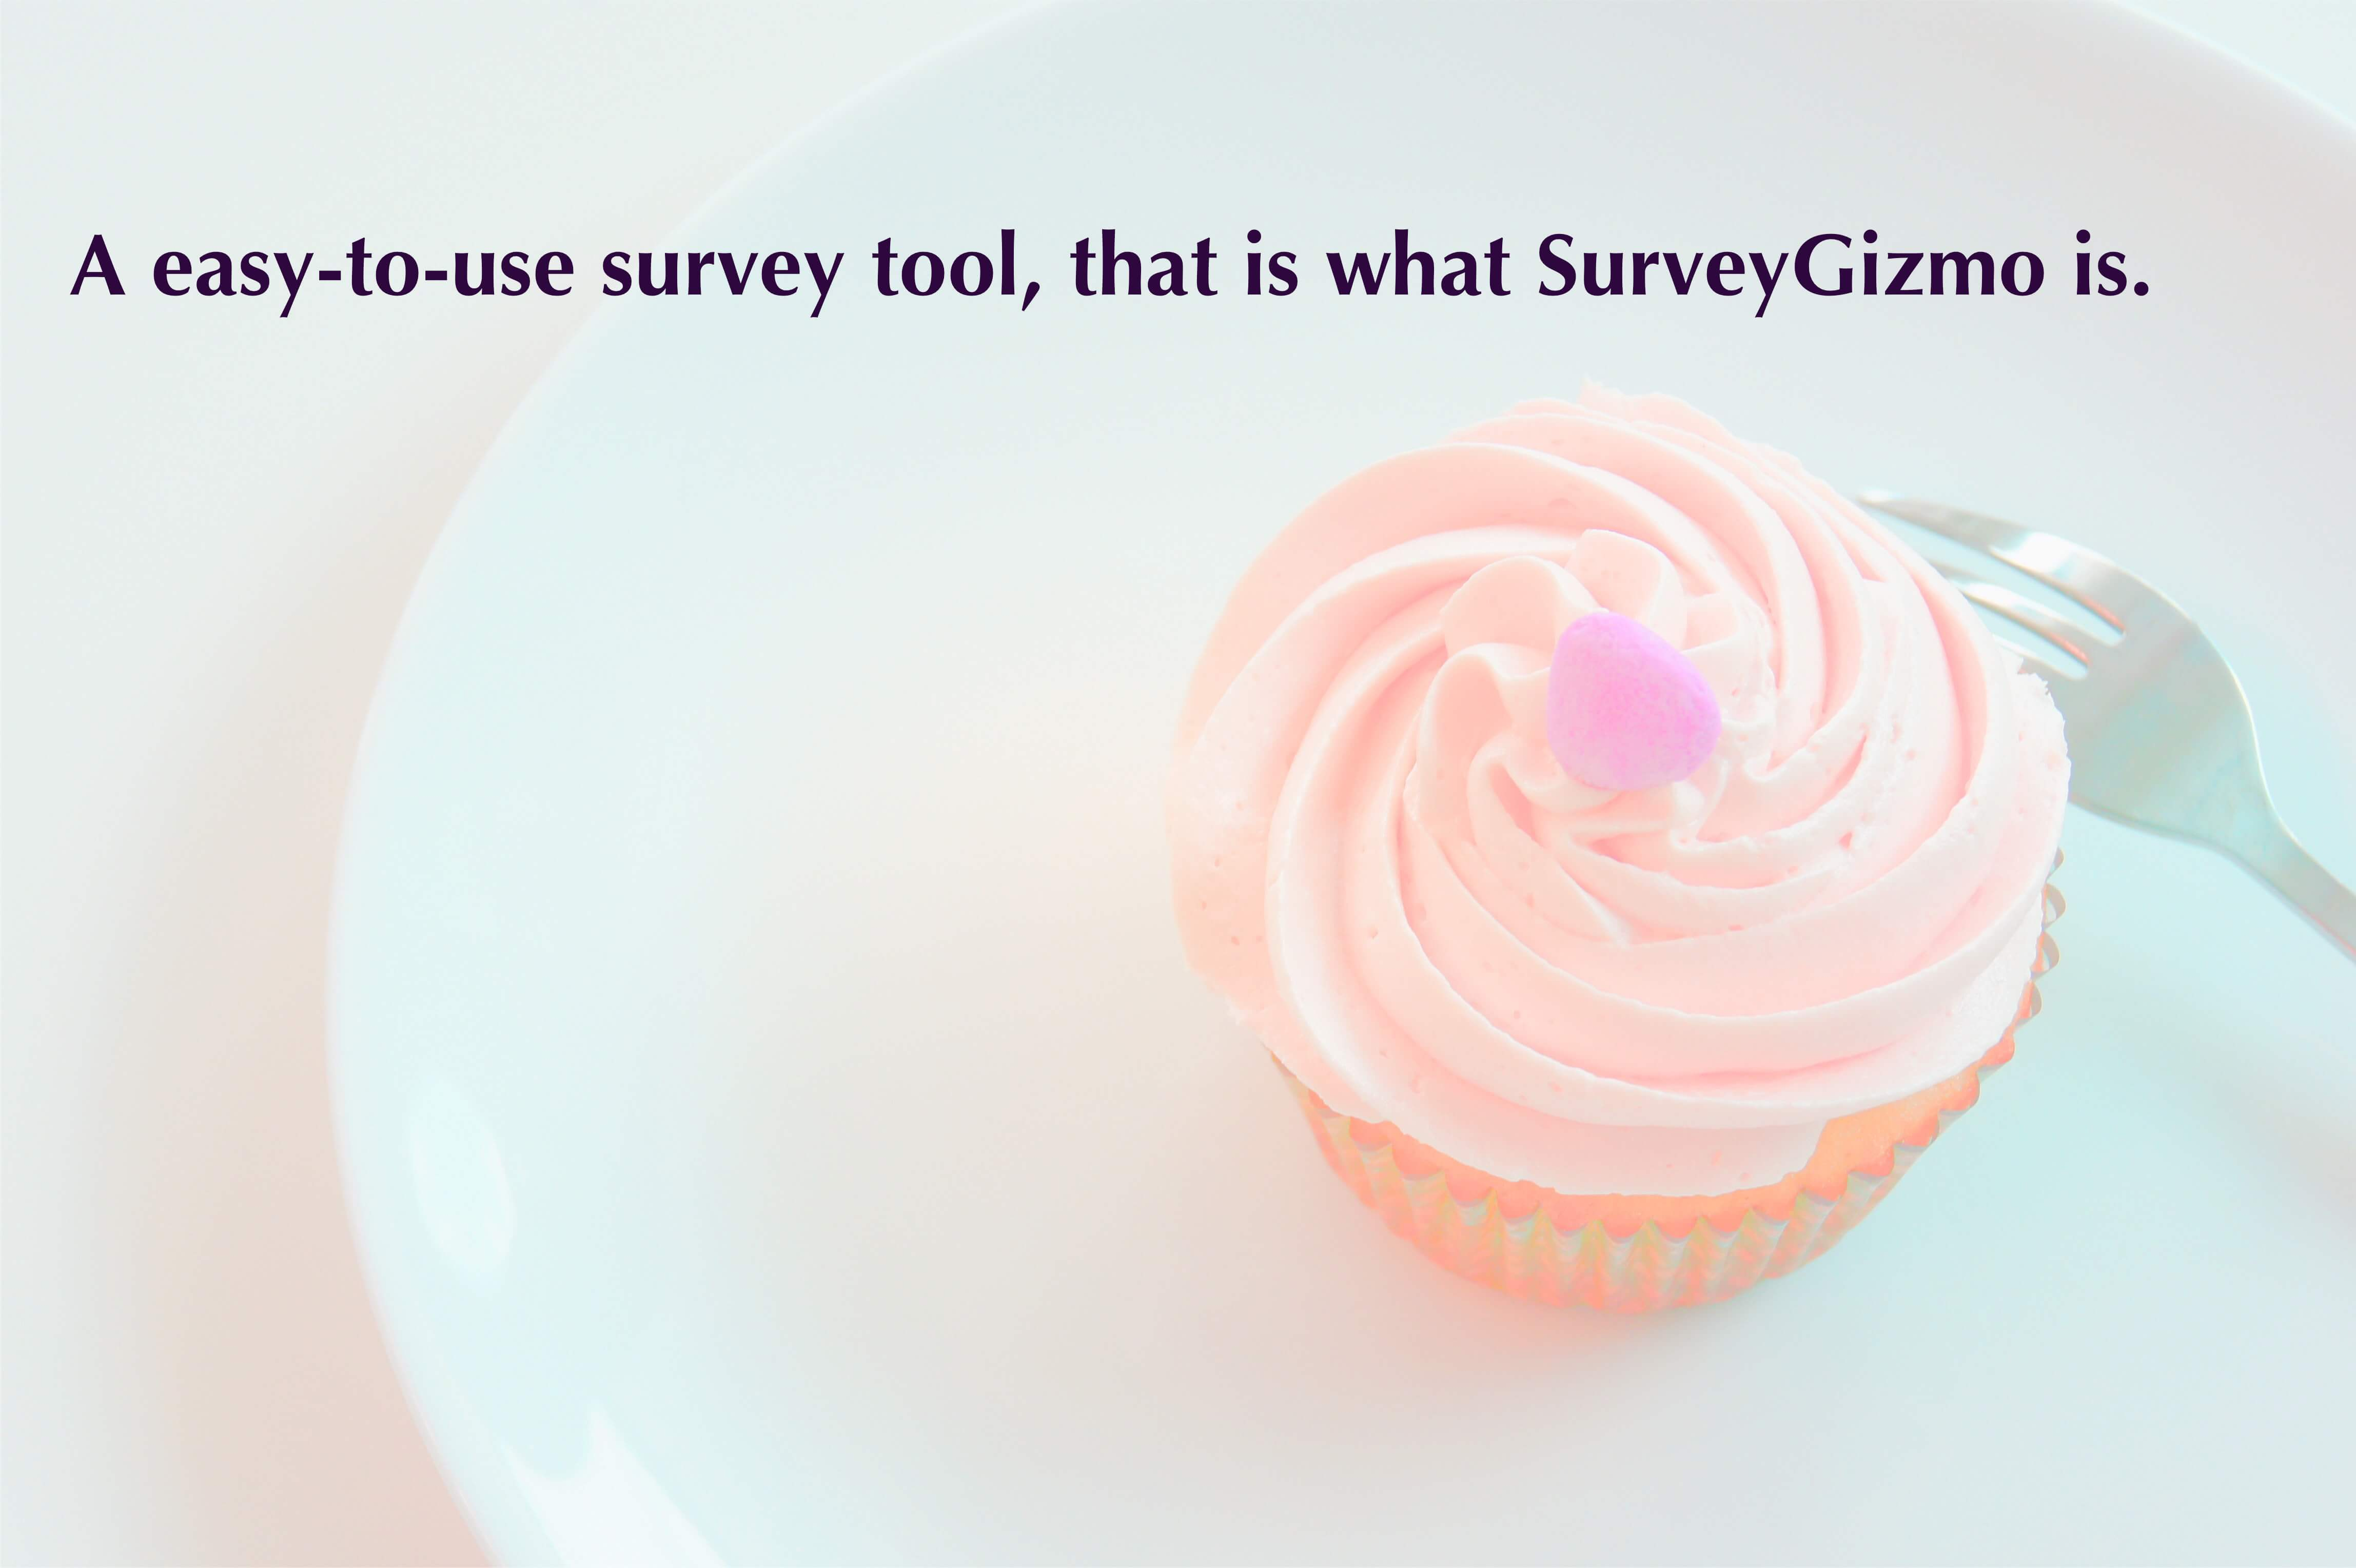 A easy-to-use survey tool, that is what SurveyGizmo is. No wonder it is one of the best online survey tools